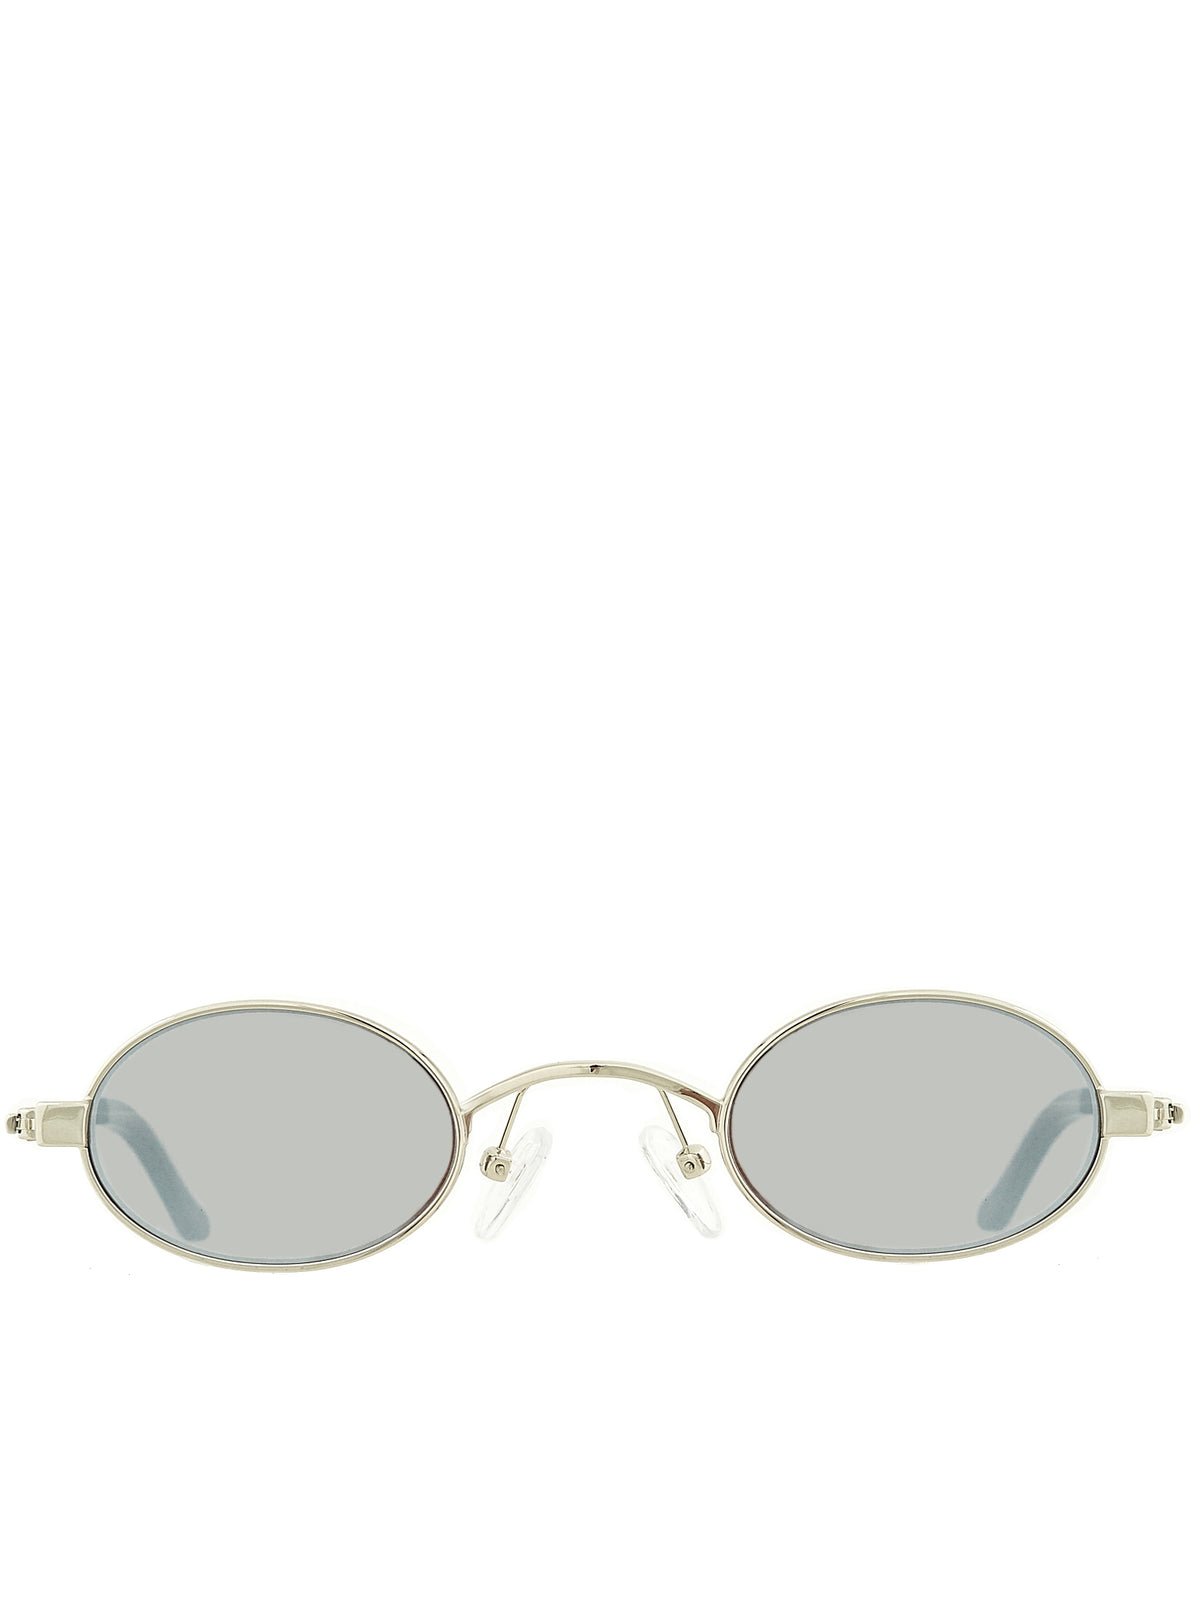 Roberi & Fraud Metallic Sunglasses - Hlorenzo Front